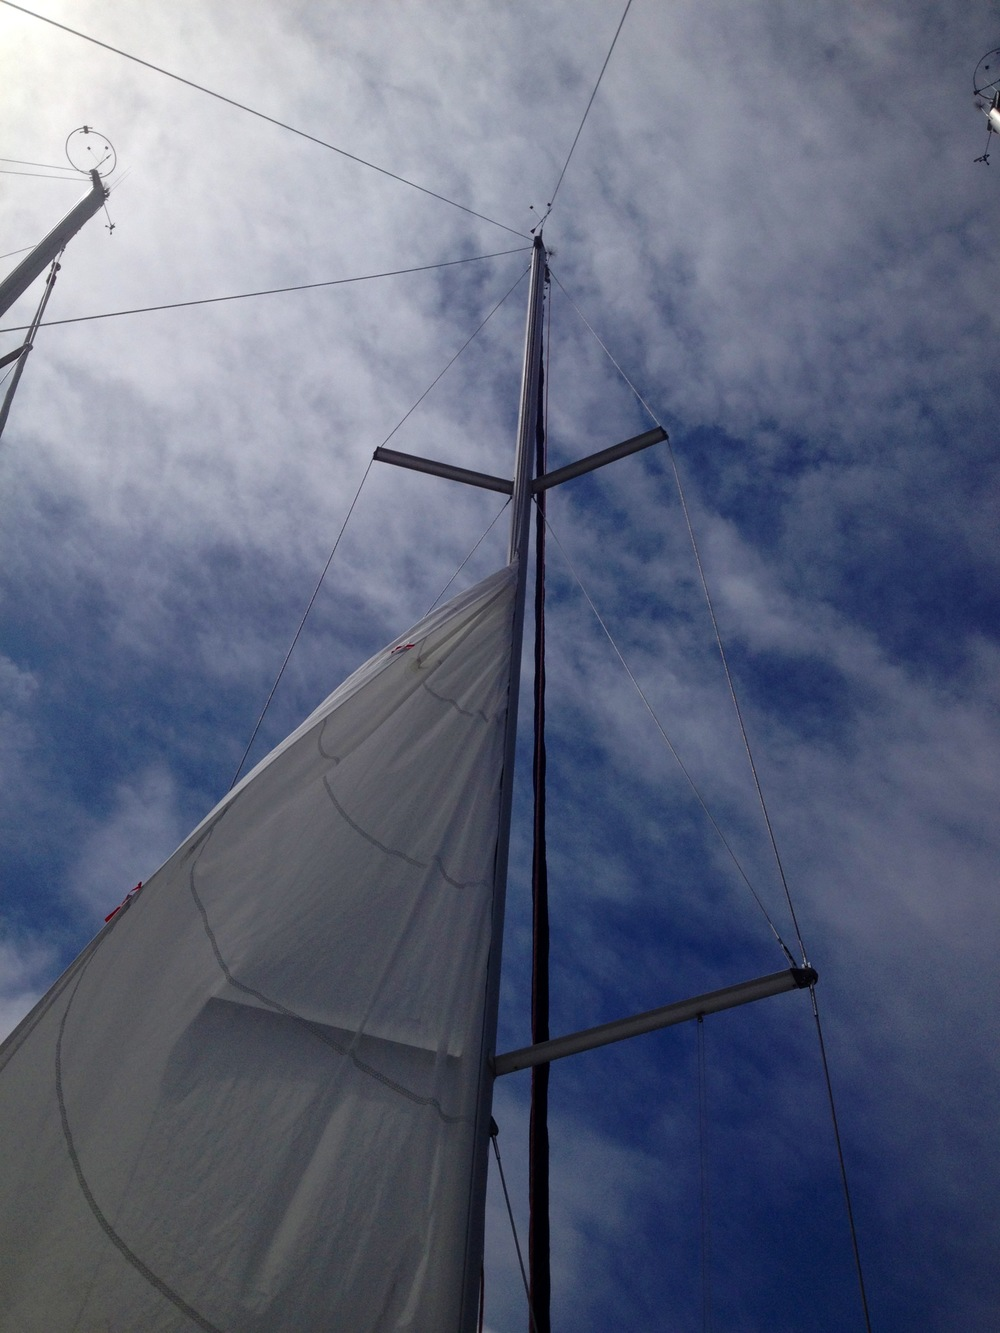 Main sail on a very bad day, at the dock today.